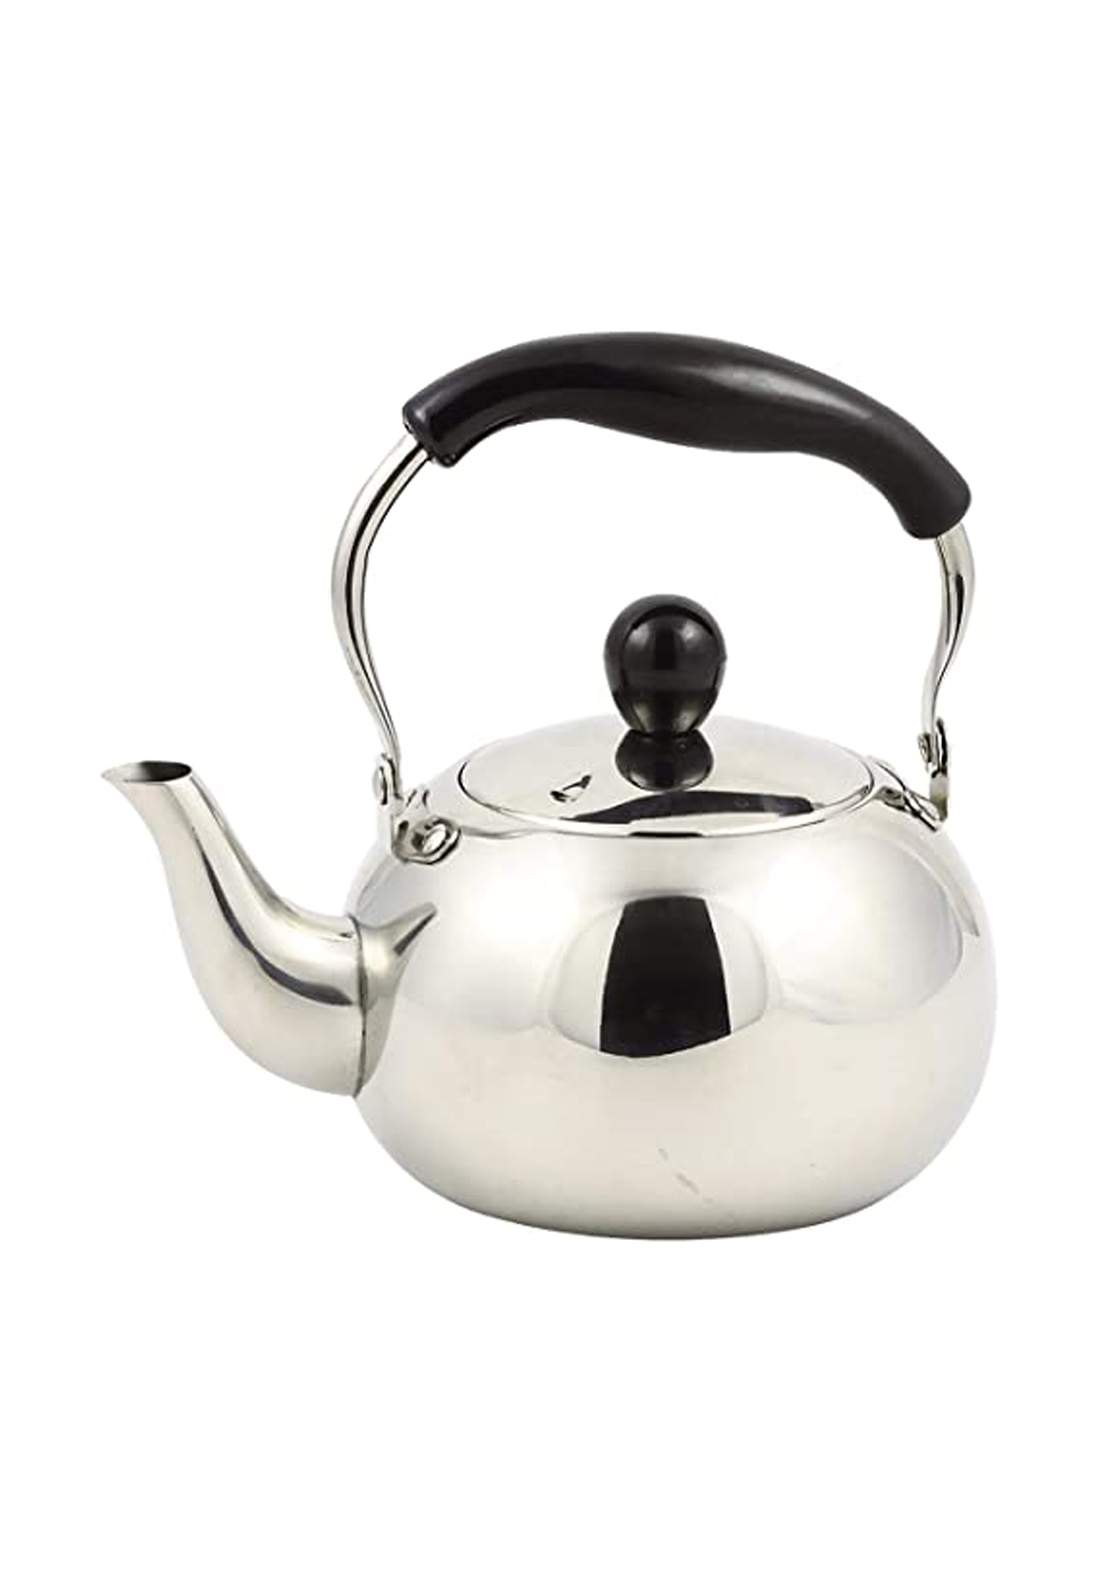 Pearl Metal HB-4416 Kettle Silver 1.0L Stainless Steel ابريق شاي